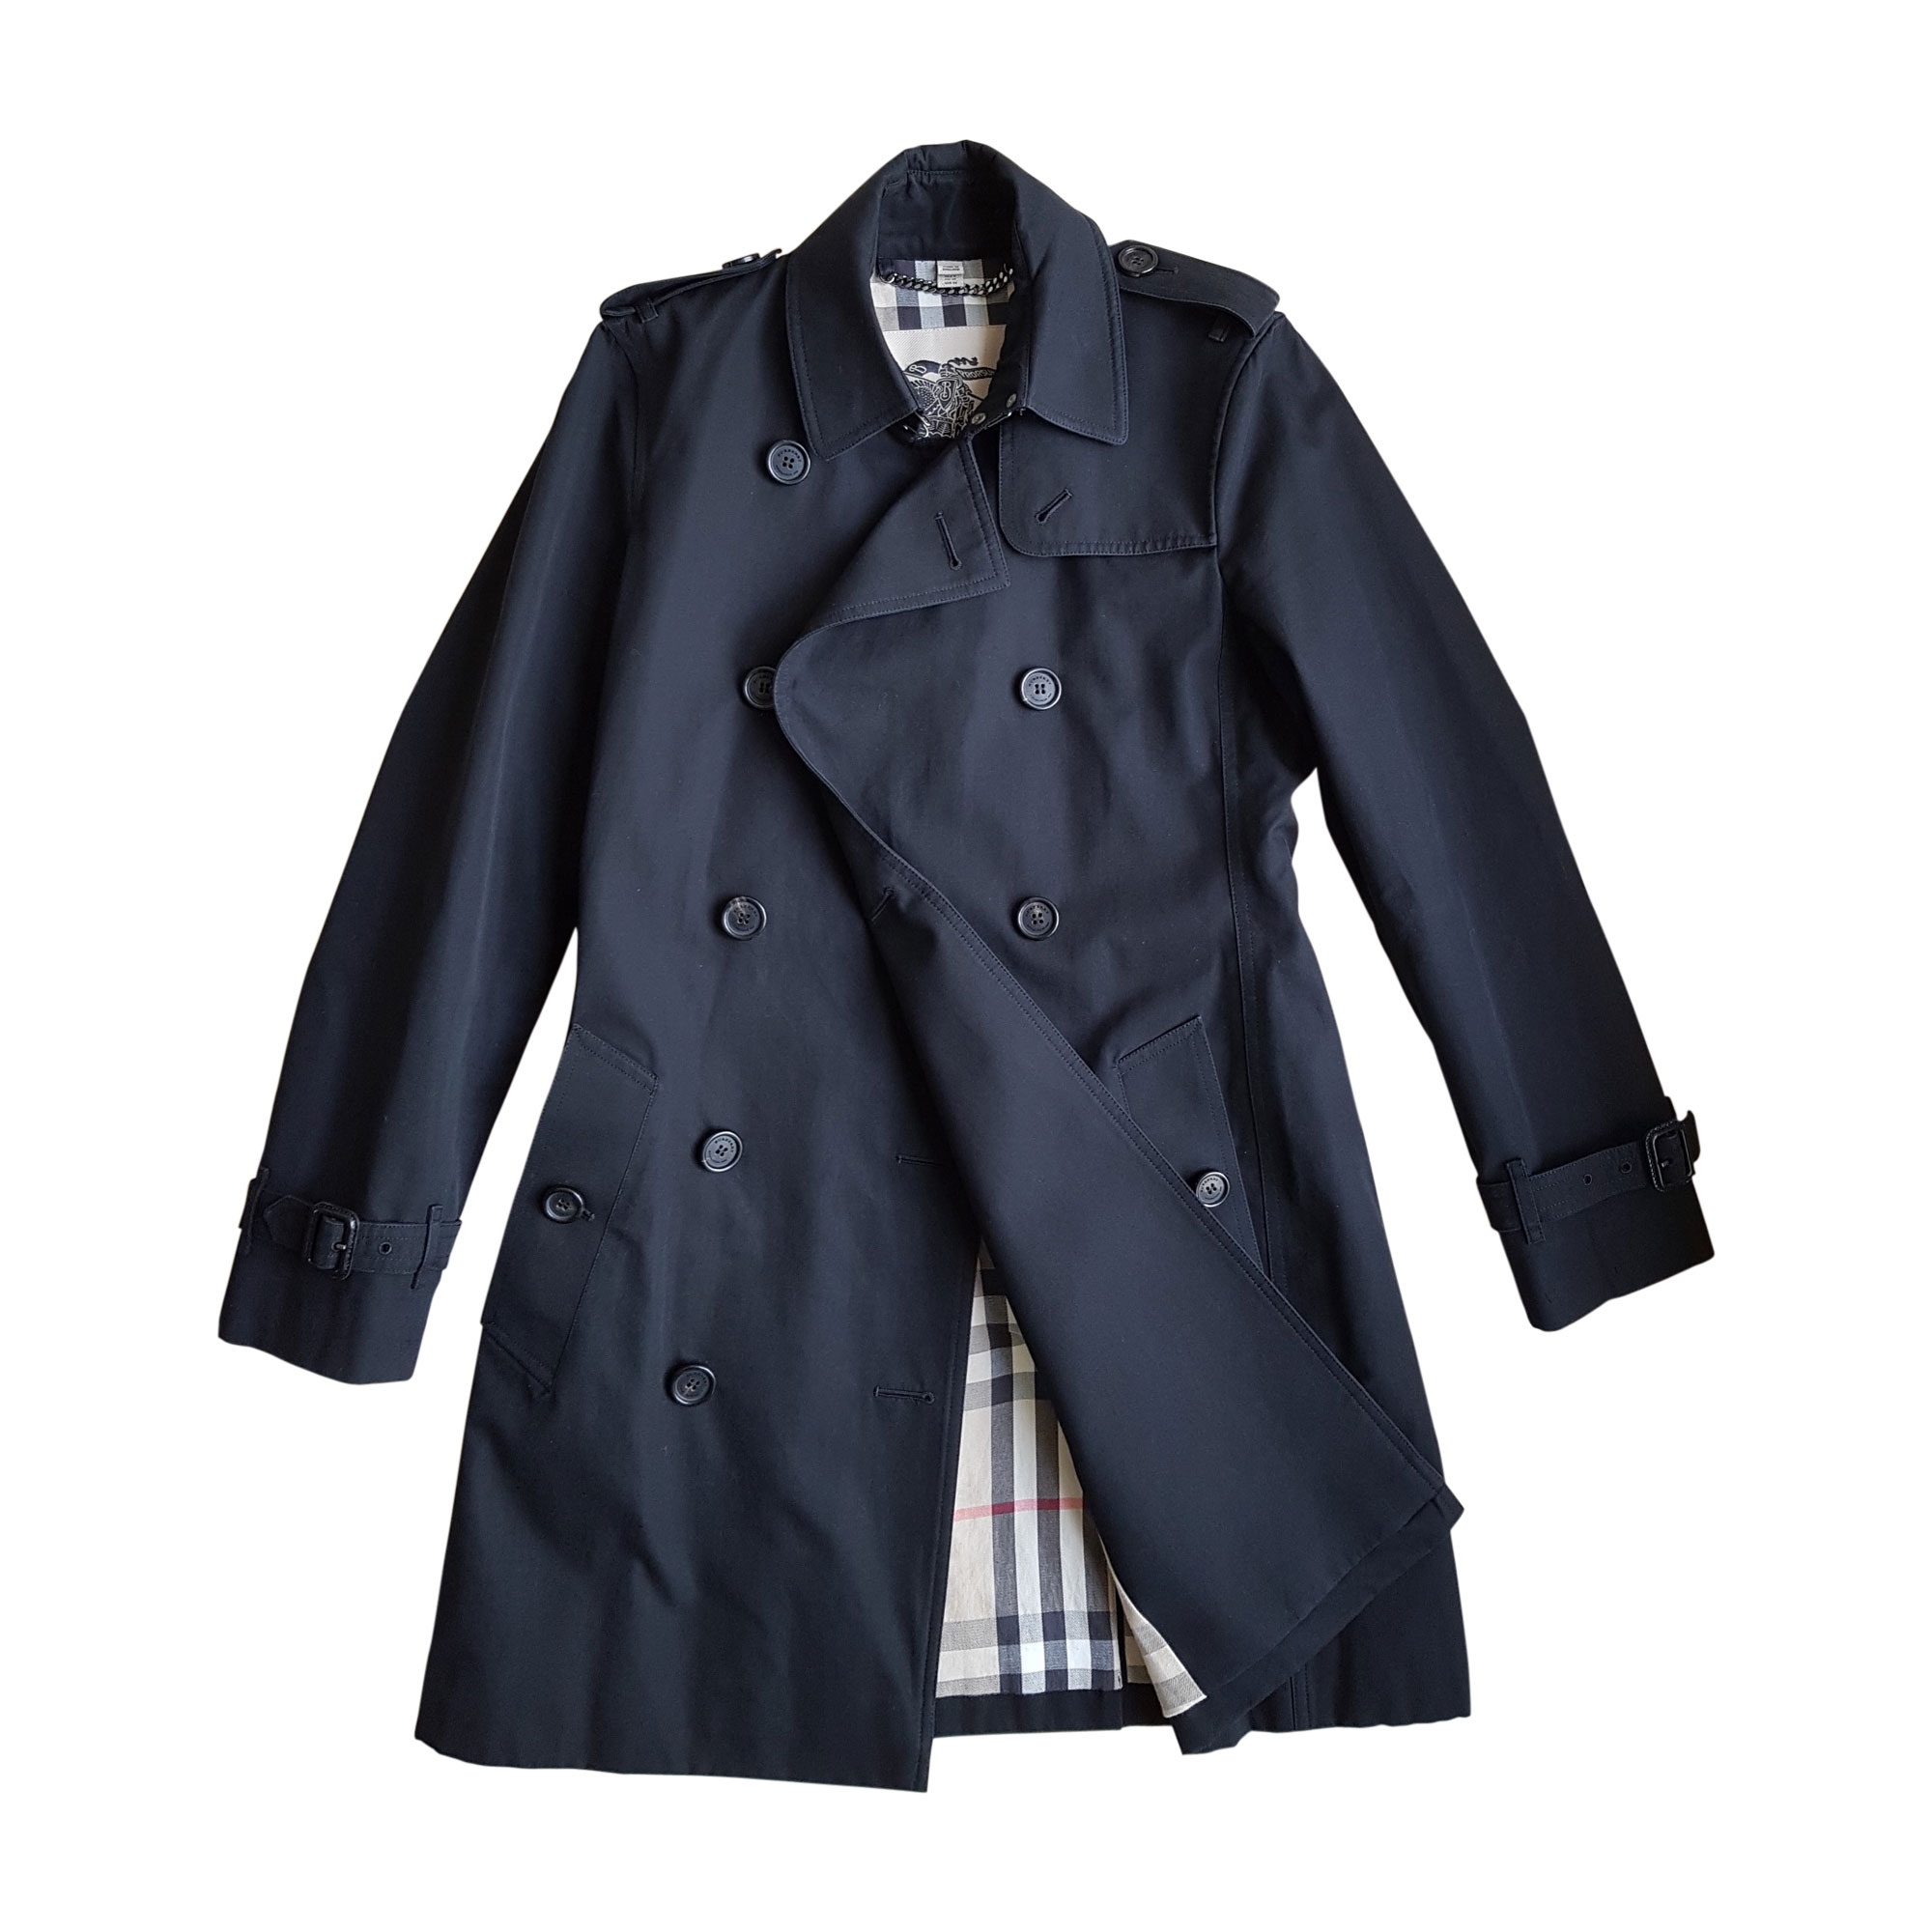 Imperméable, trench BURBERRY 36 (S, T1) noir - 8071833 0caeed66386